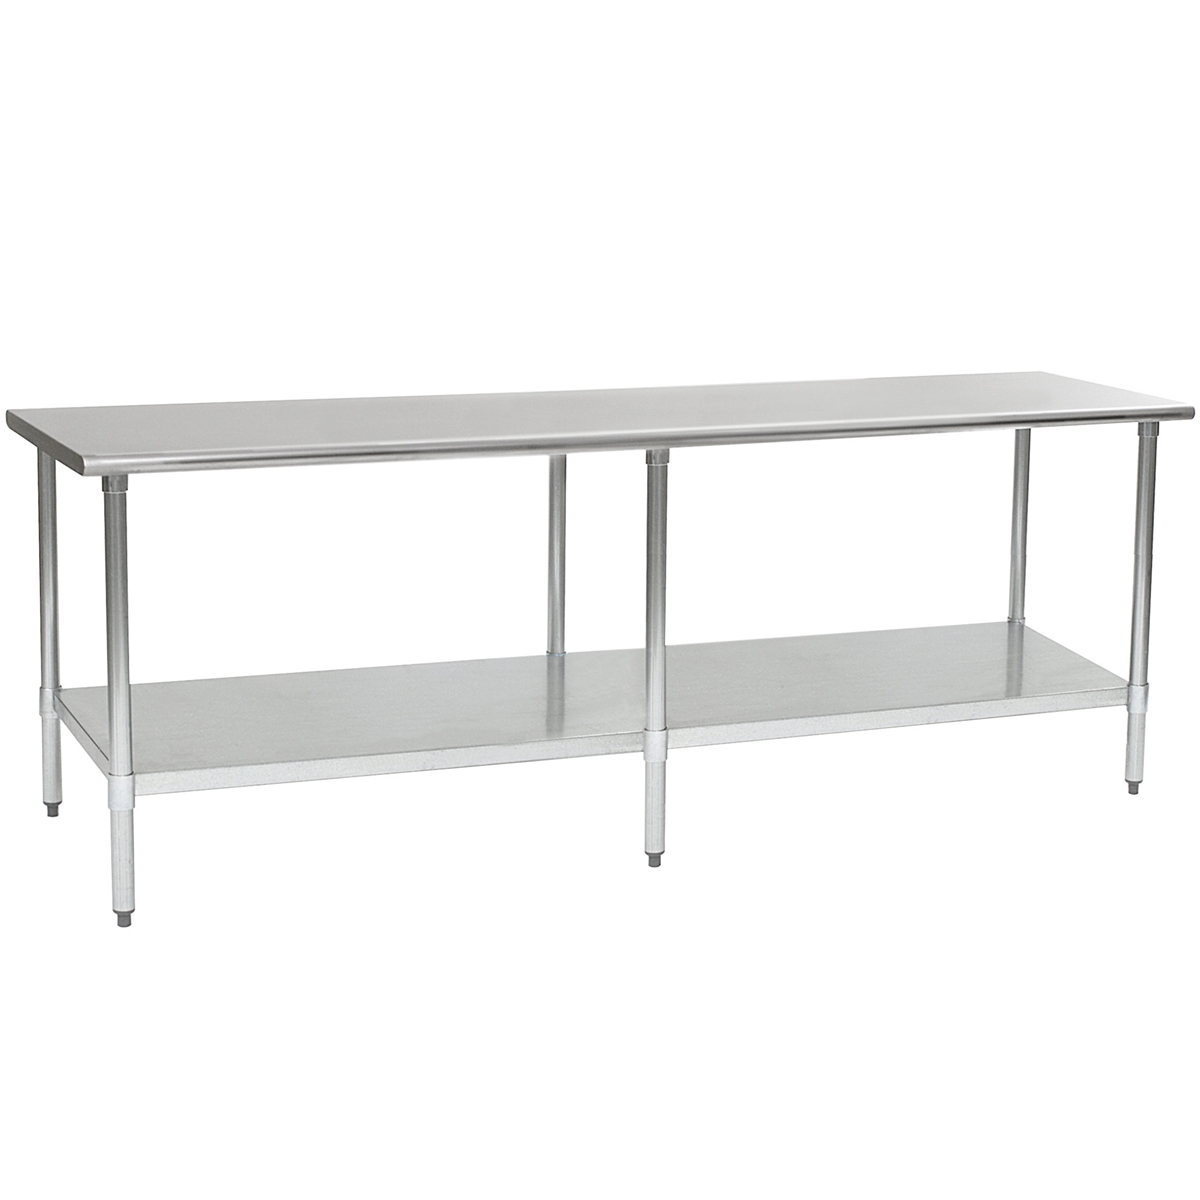 Used Stainless Steel Tables >> Used 8 Ft Stainless Steel Table